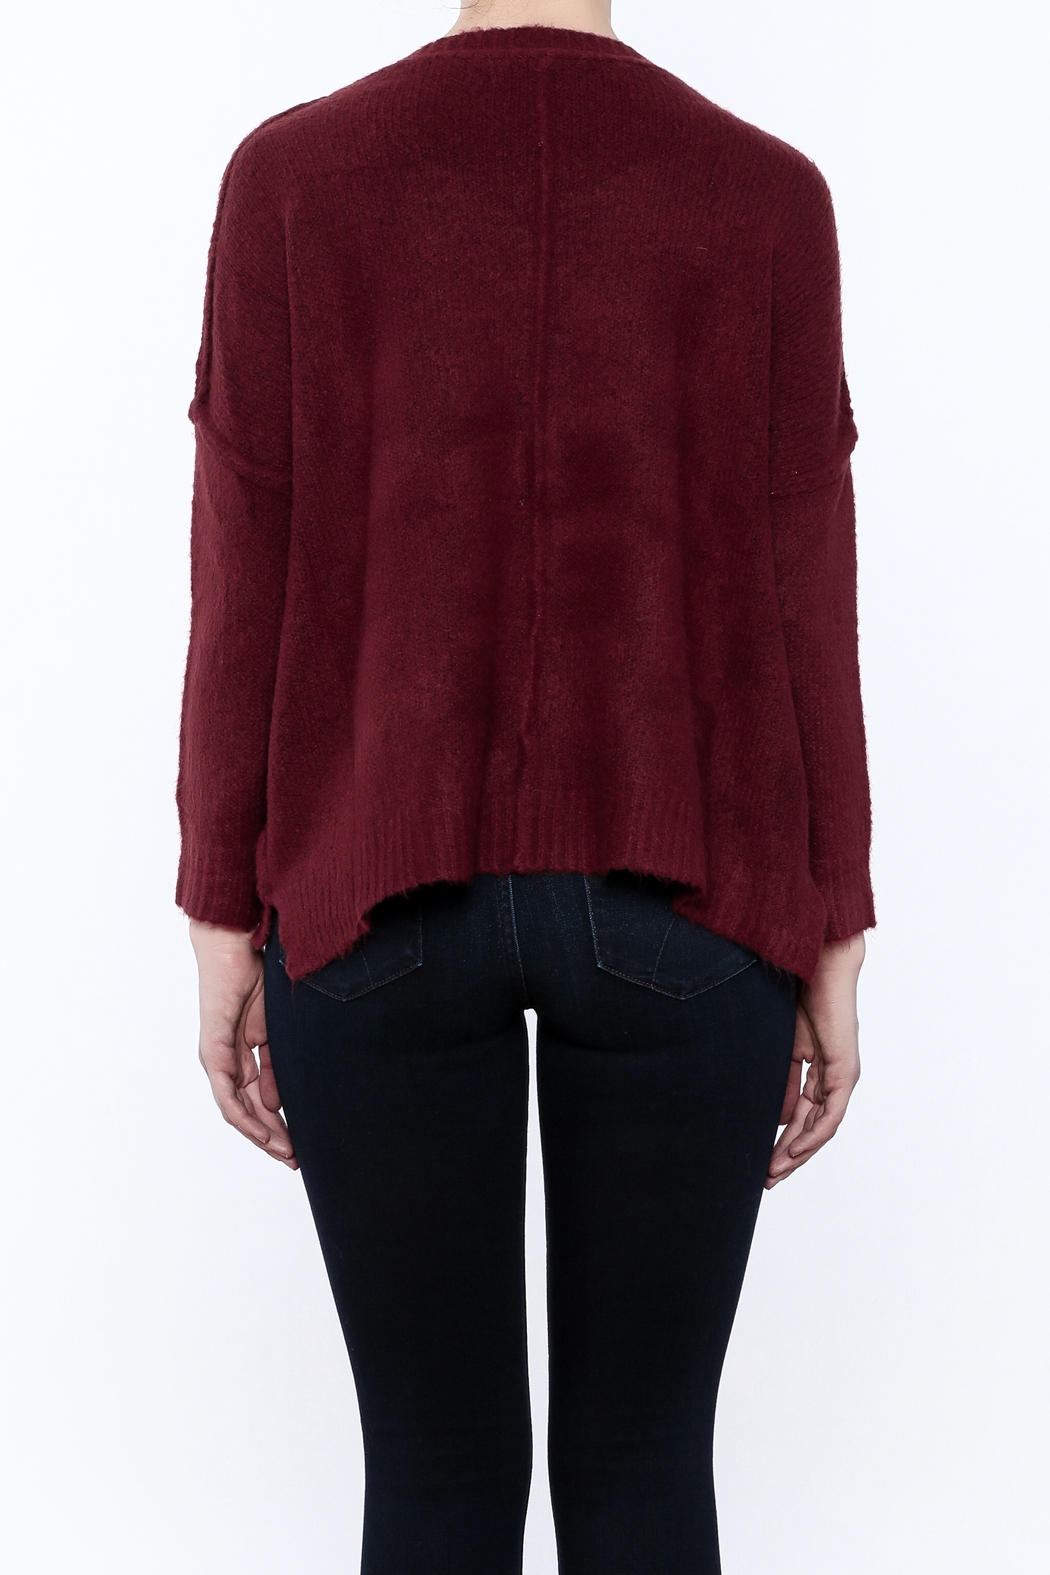 Olivaceous Fuzzy Boxy Sweater - Back Cropped Image